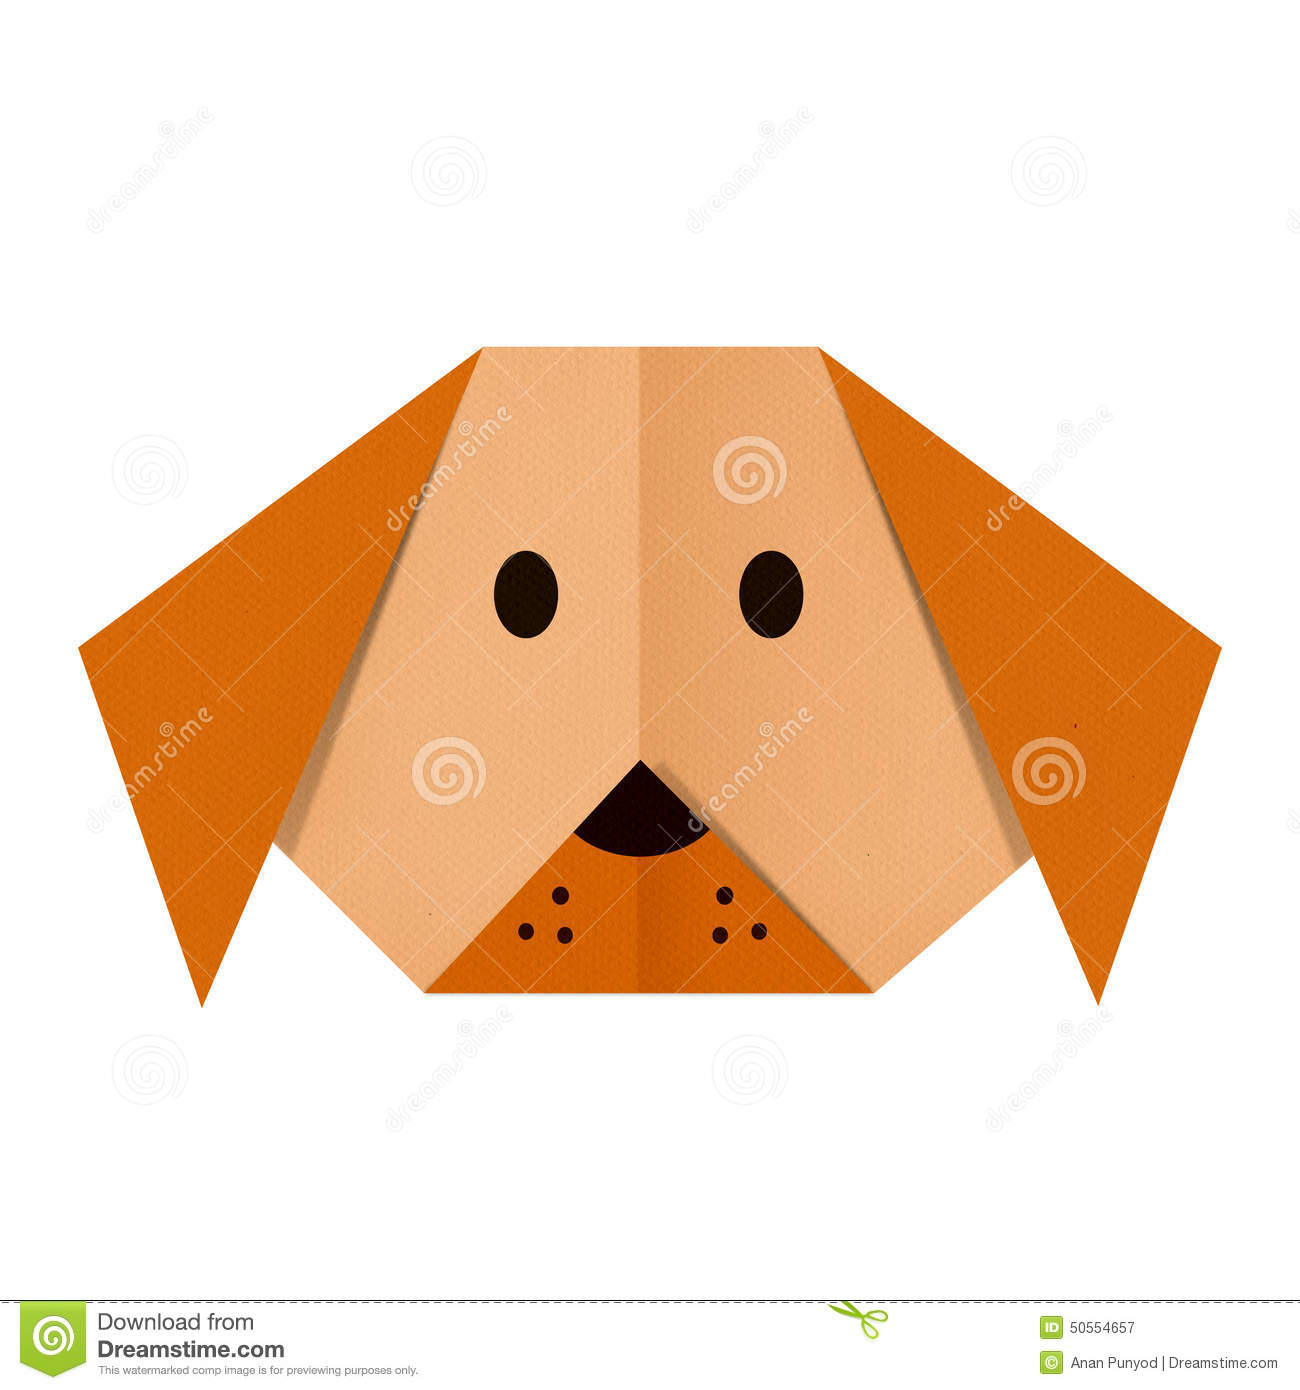 Origami dog face how to origami - Origami Paper A Dog Face Royalty Free Stock Photography